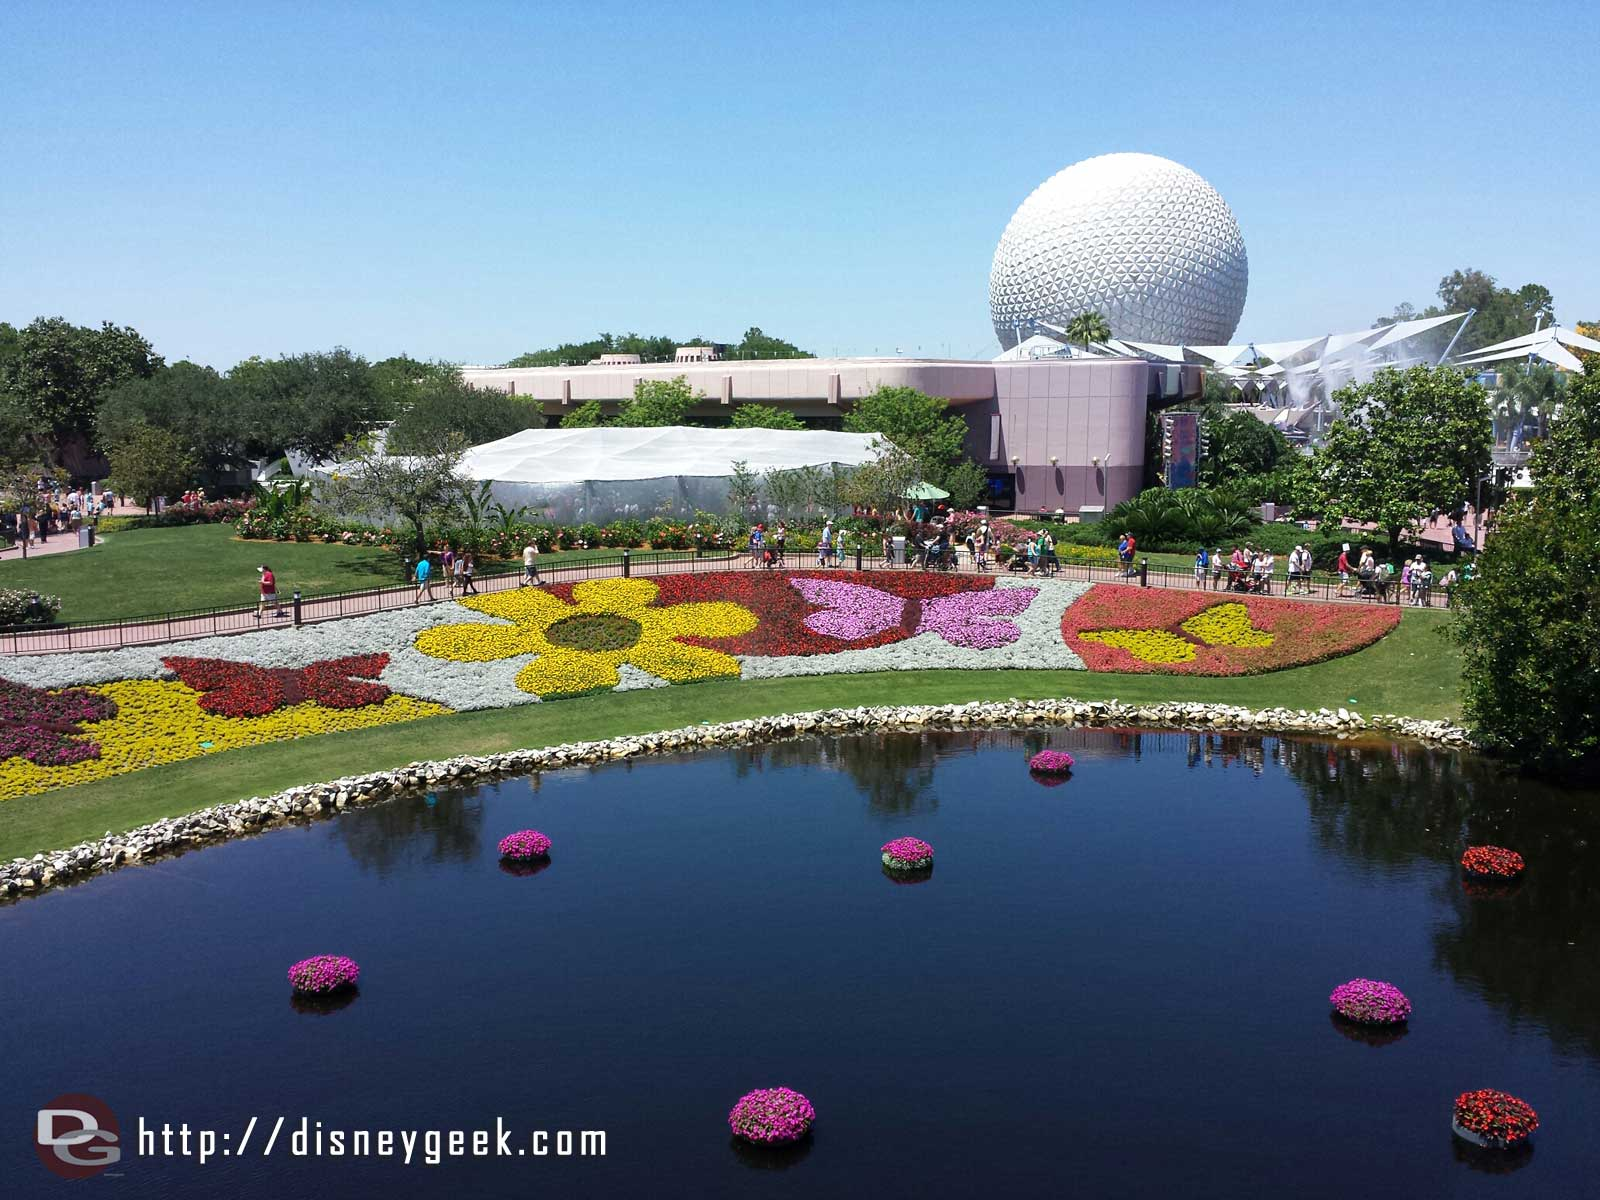 More flower beds from the Monorail    –  Epcot International Flower & Garden Festival